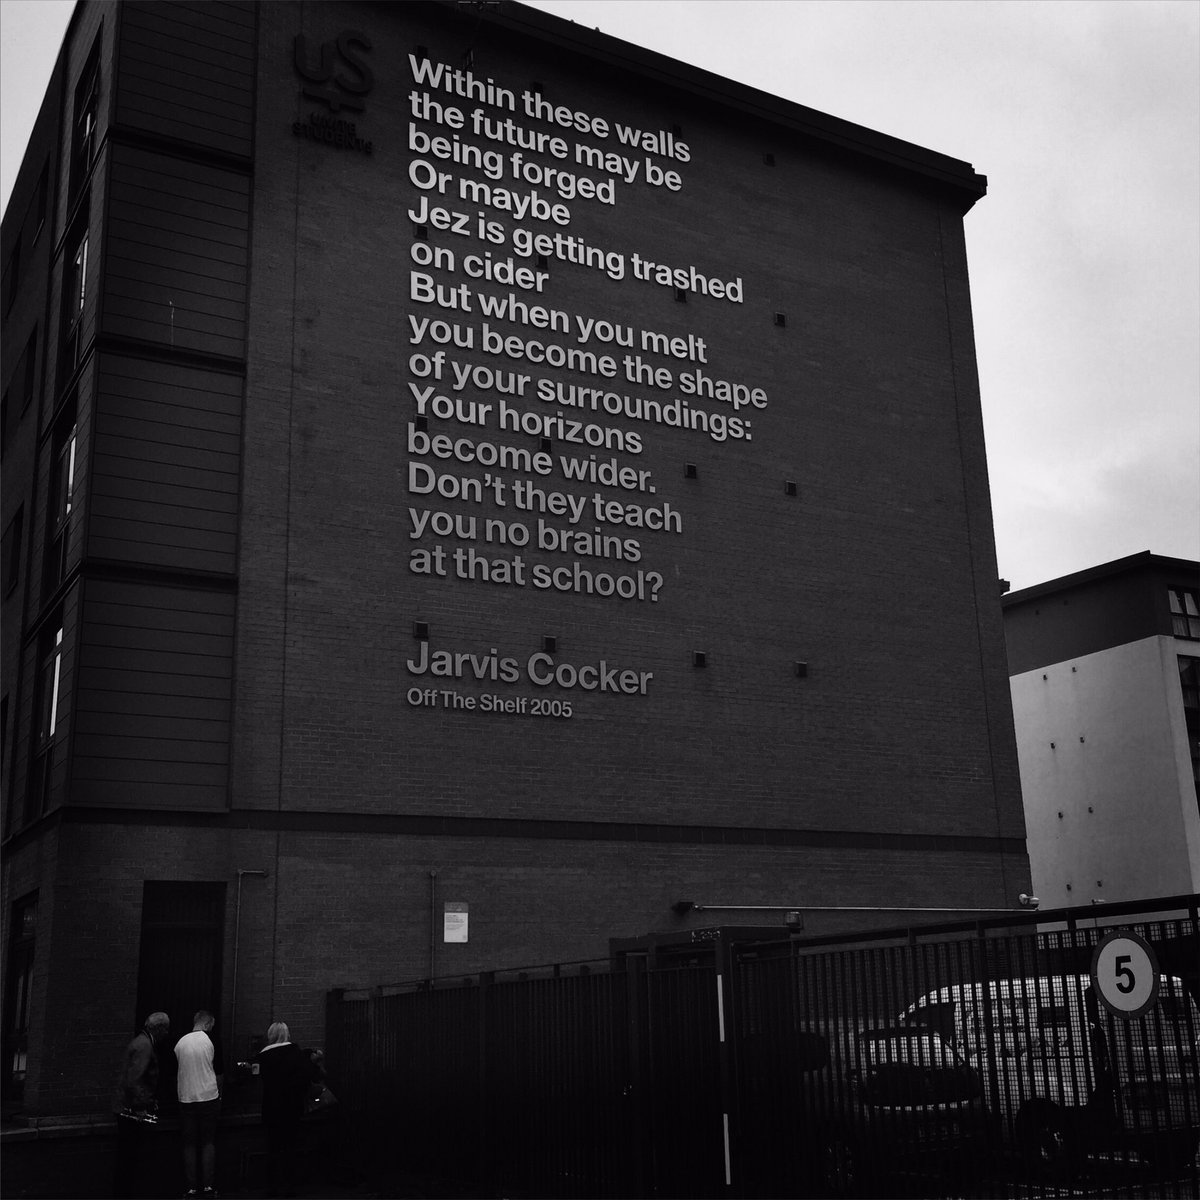 And we're in Sheffield... https://t.co/u6DZF79SSP